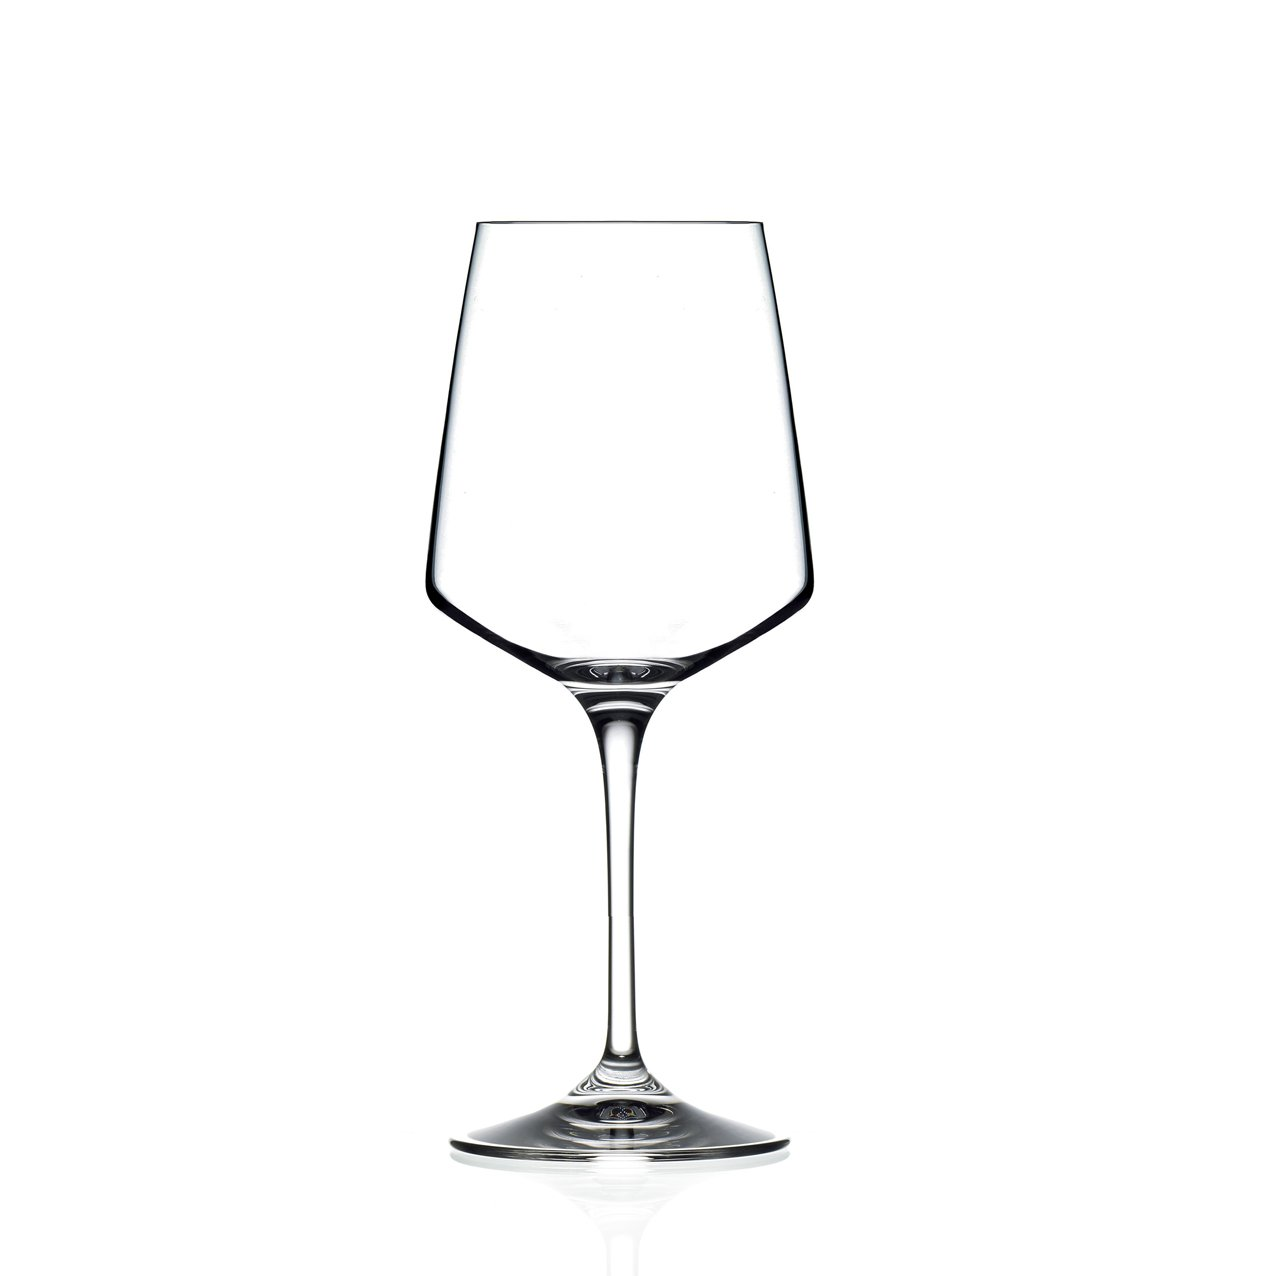 RCR 25325020006 Wine Glass Evergreen House 25325020006_Trasparente